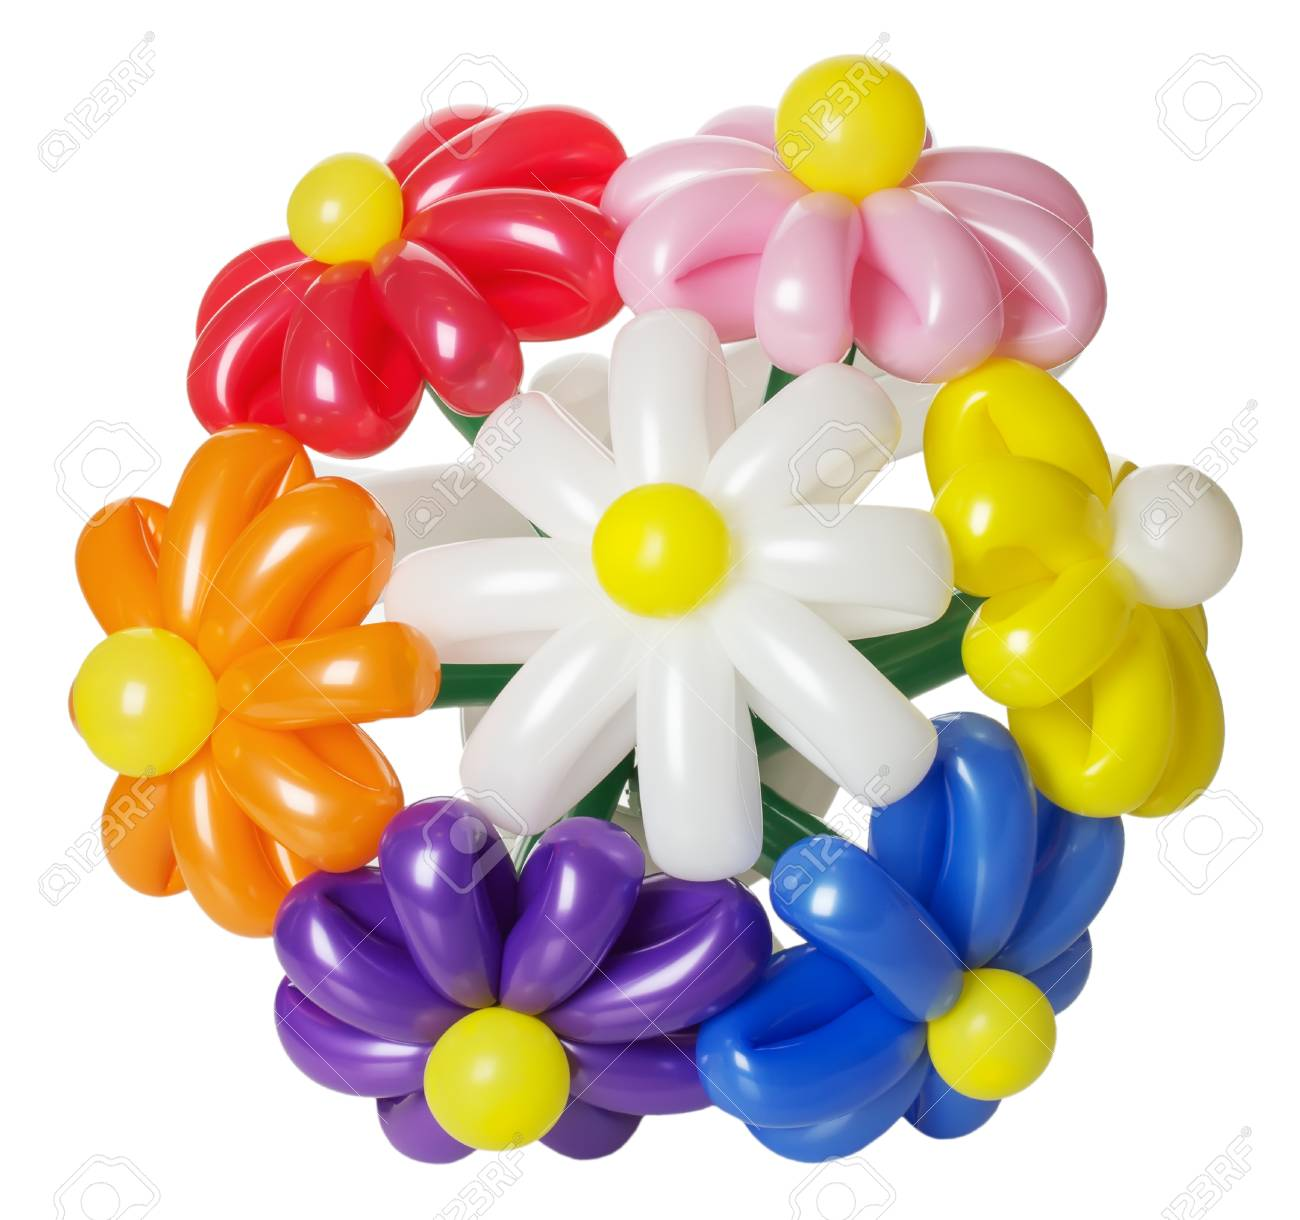 Bouquet With Balloon Flowers Isolated On The White Background. Stock ...